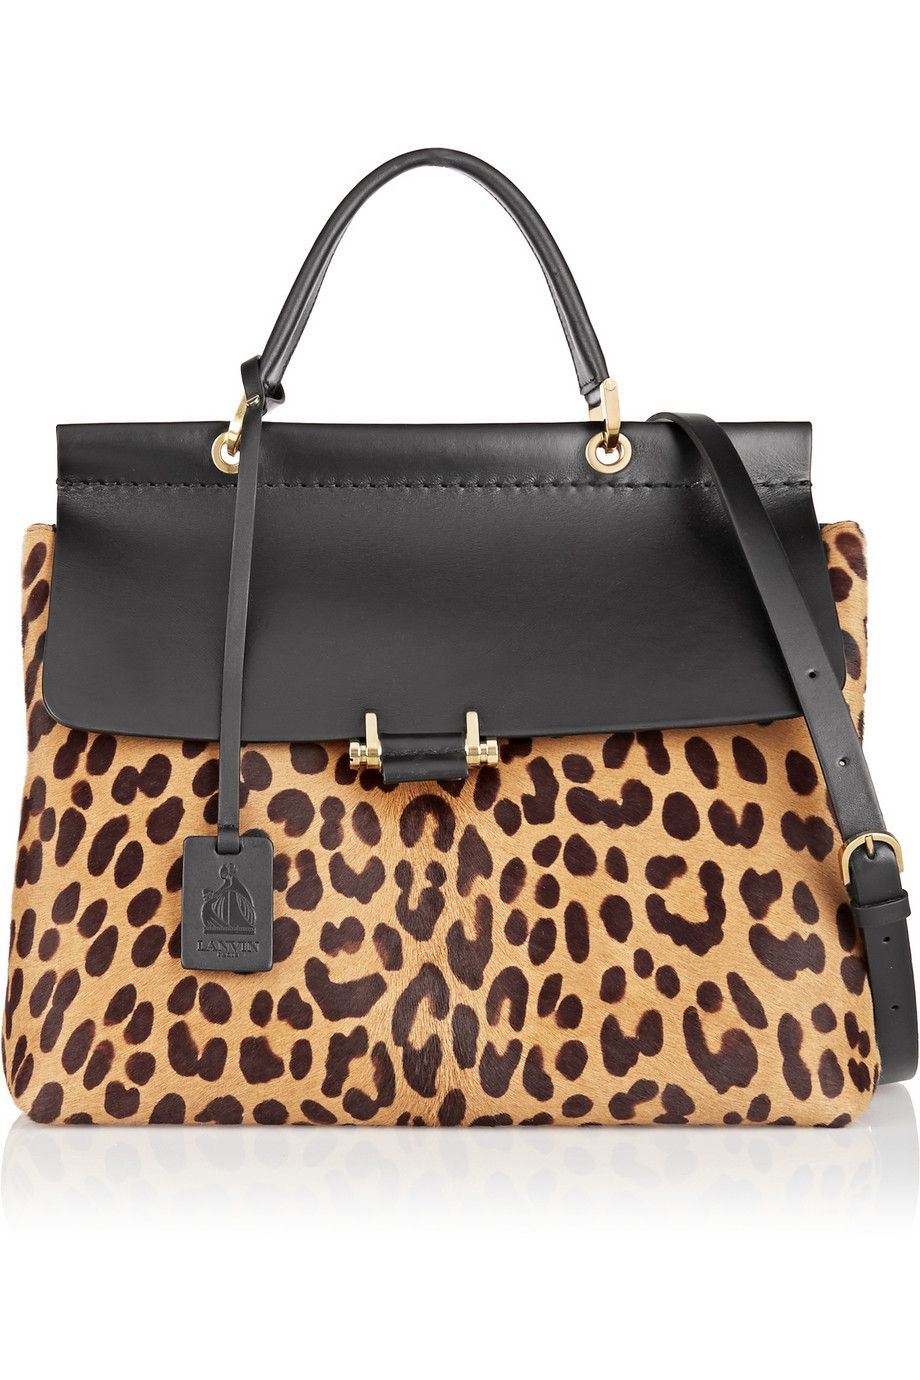 Lanvin|Leopard-print calf hair and leather tote|NET-A-PORTER.COM